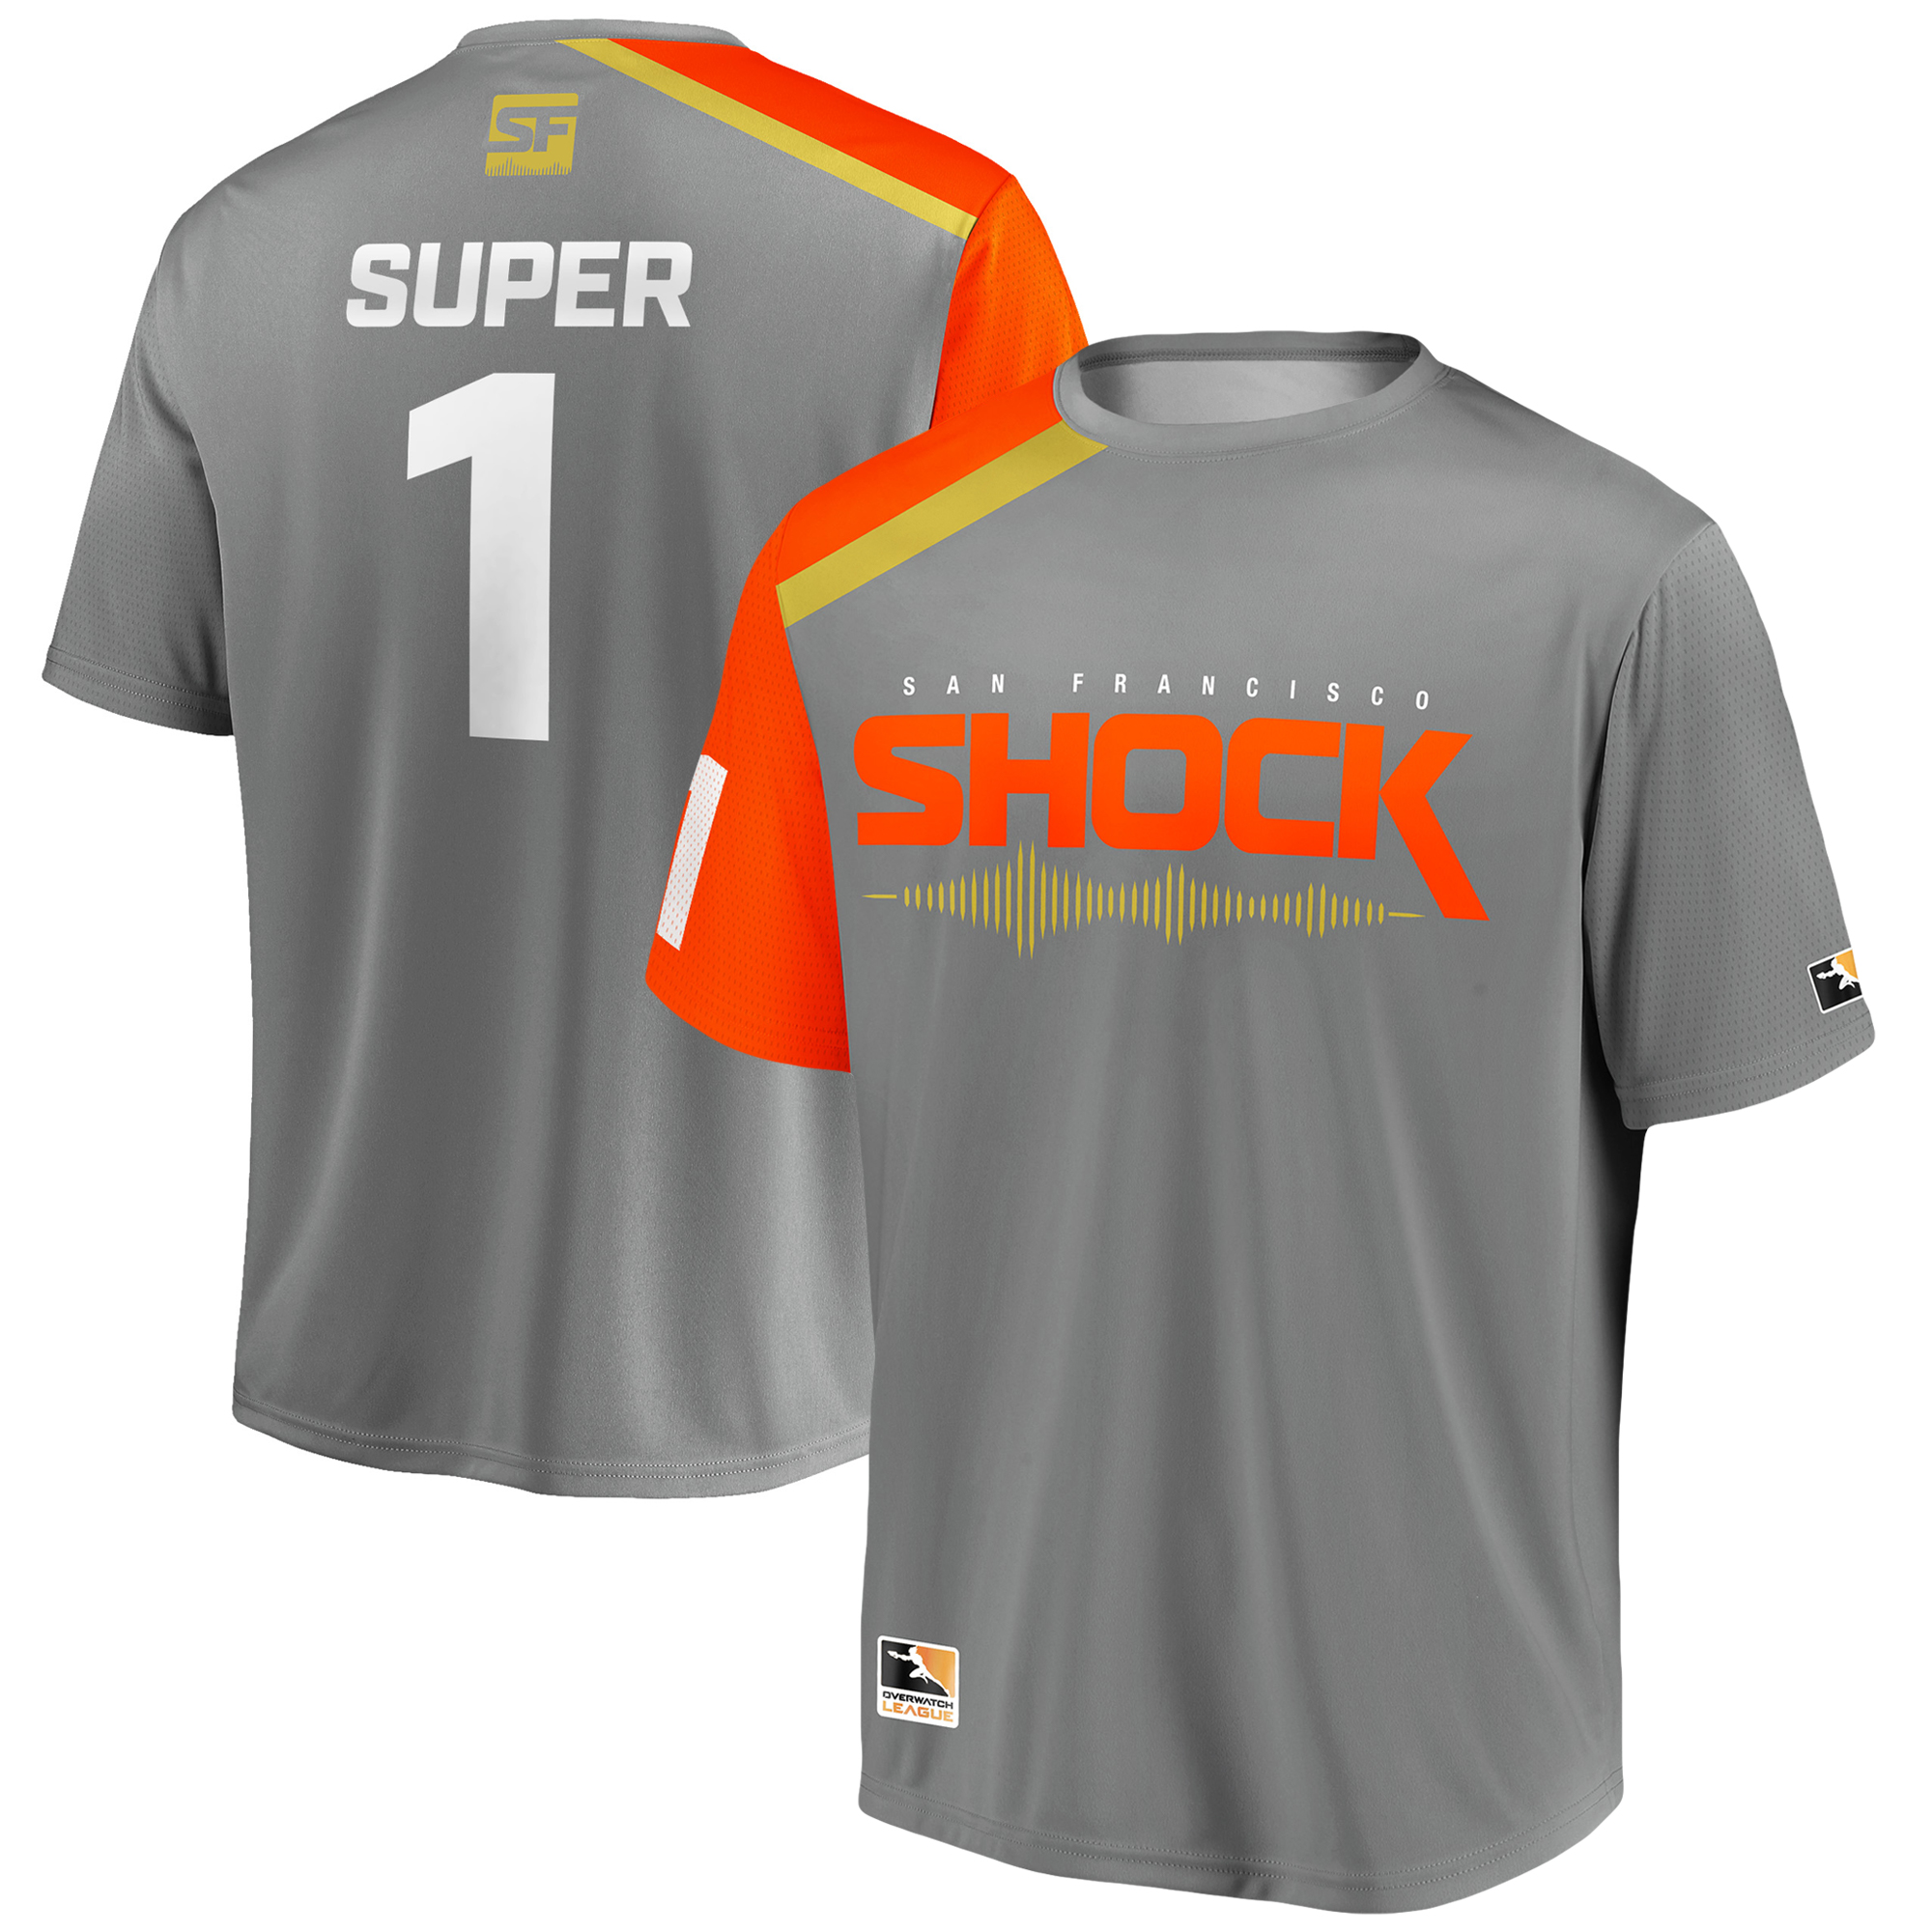 super San Francisco Shock Overwatch League Replica Home Jersey - Gray